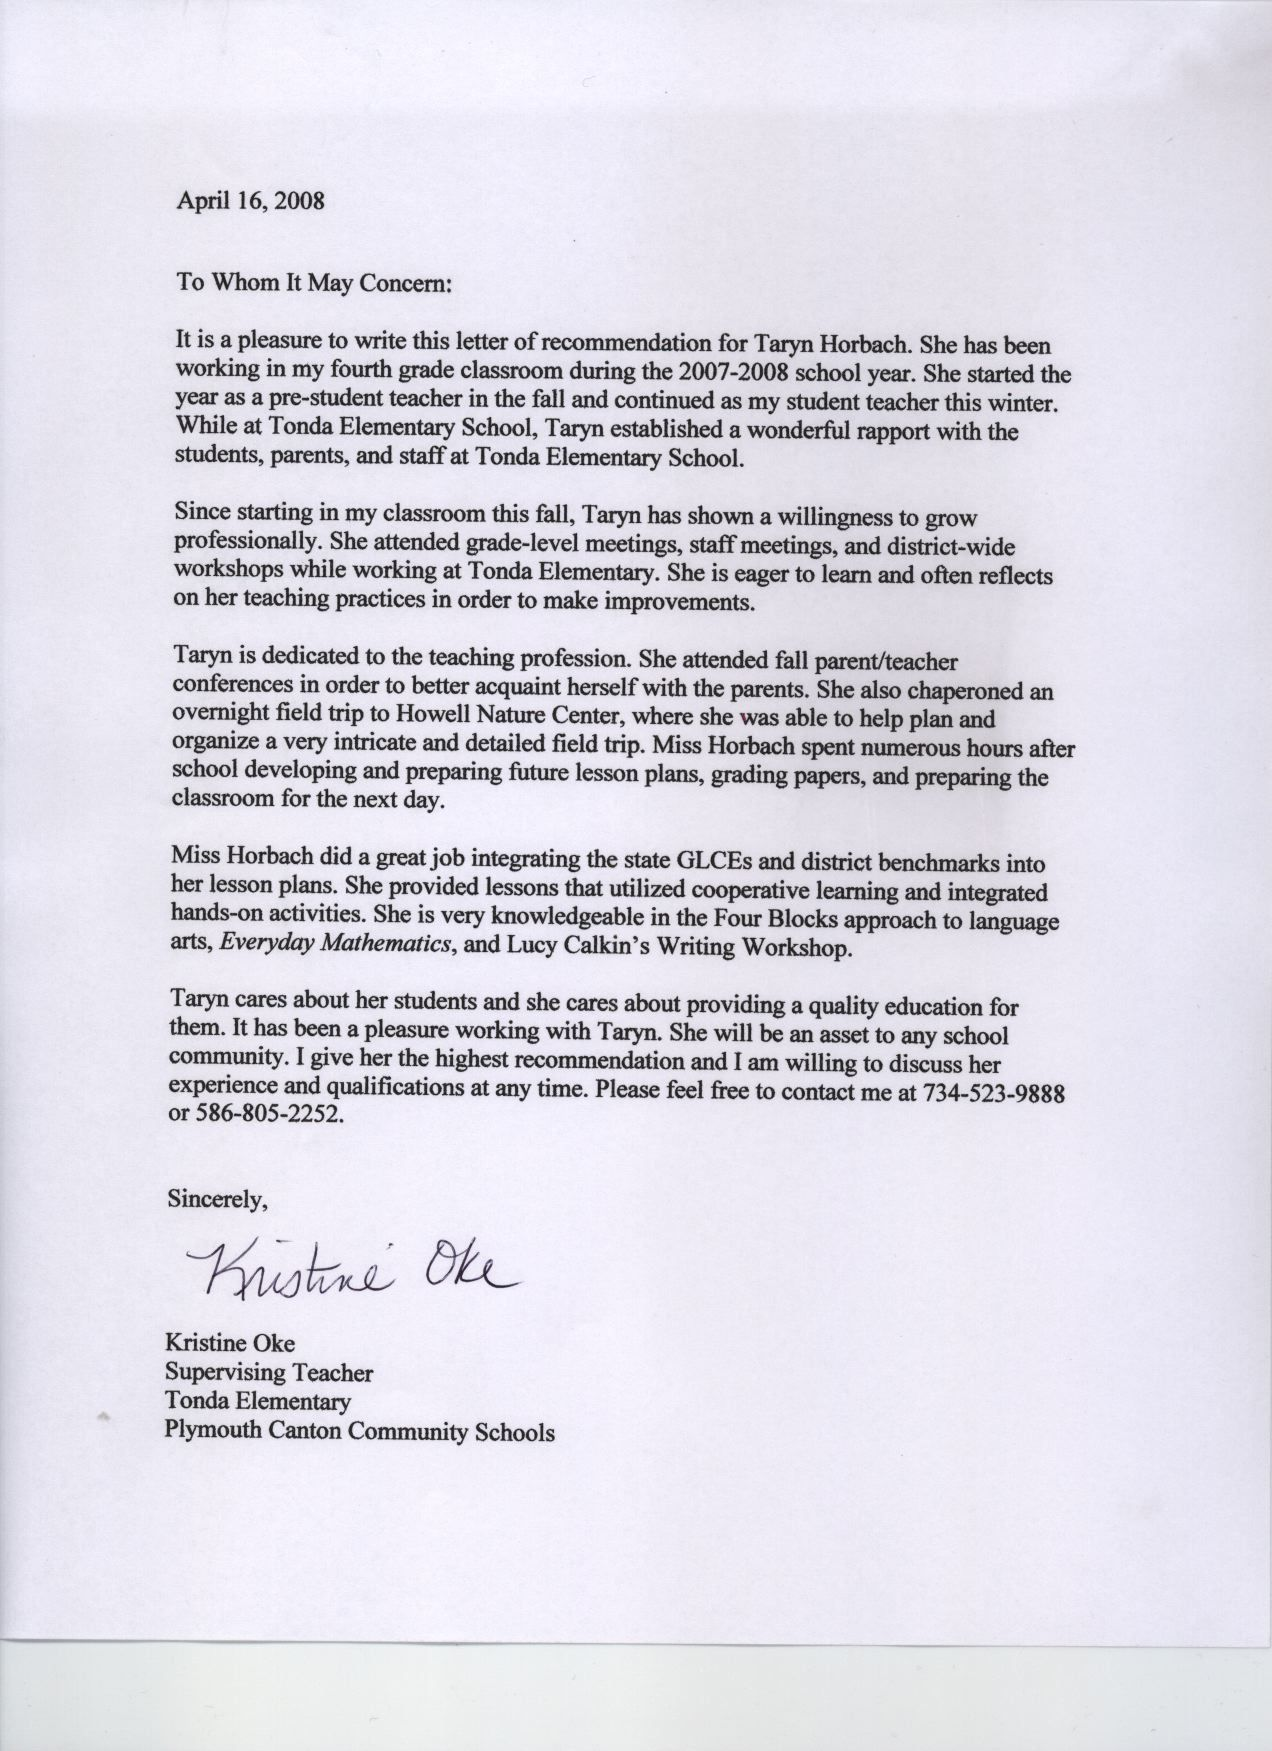 002 Sensational Letter Of Recommendation For Student Teacher From Cooperating Template Highest Quality Full